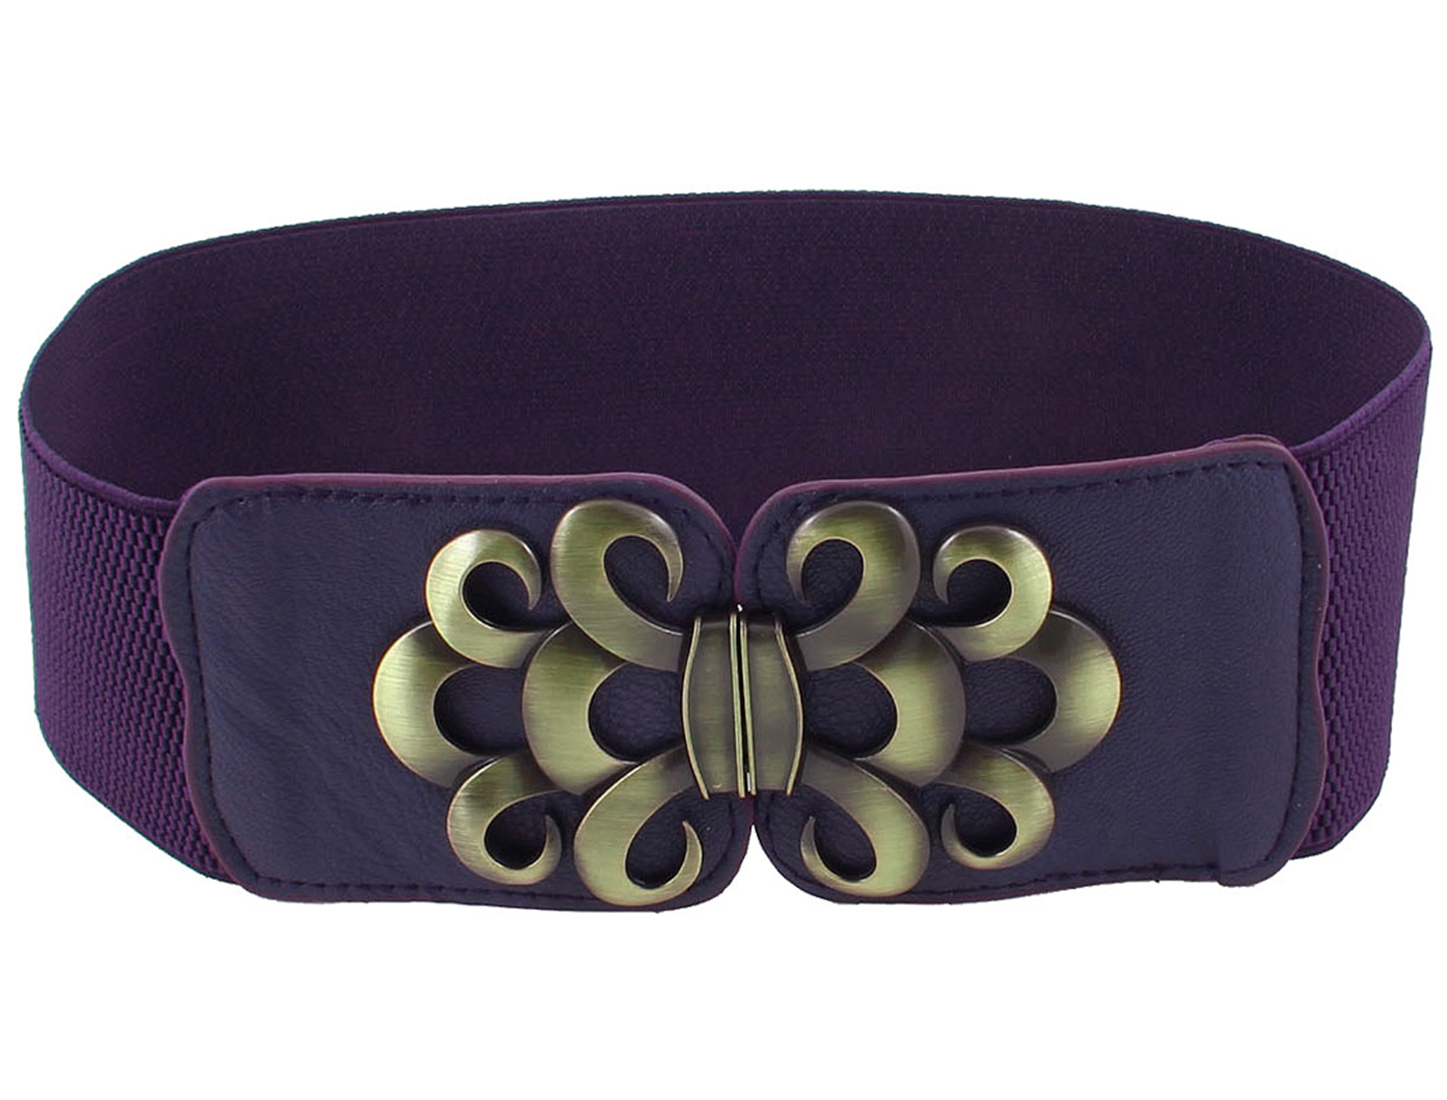 Bronze Tone Flower Accent Leopard Print Textured Stretchy Belt Purple for Woman